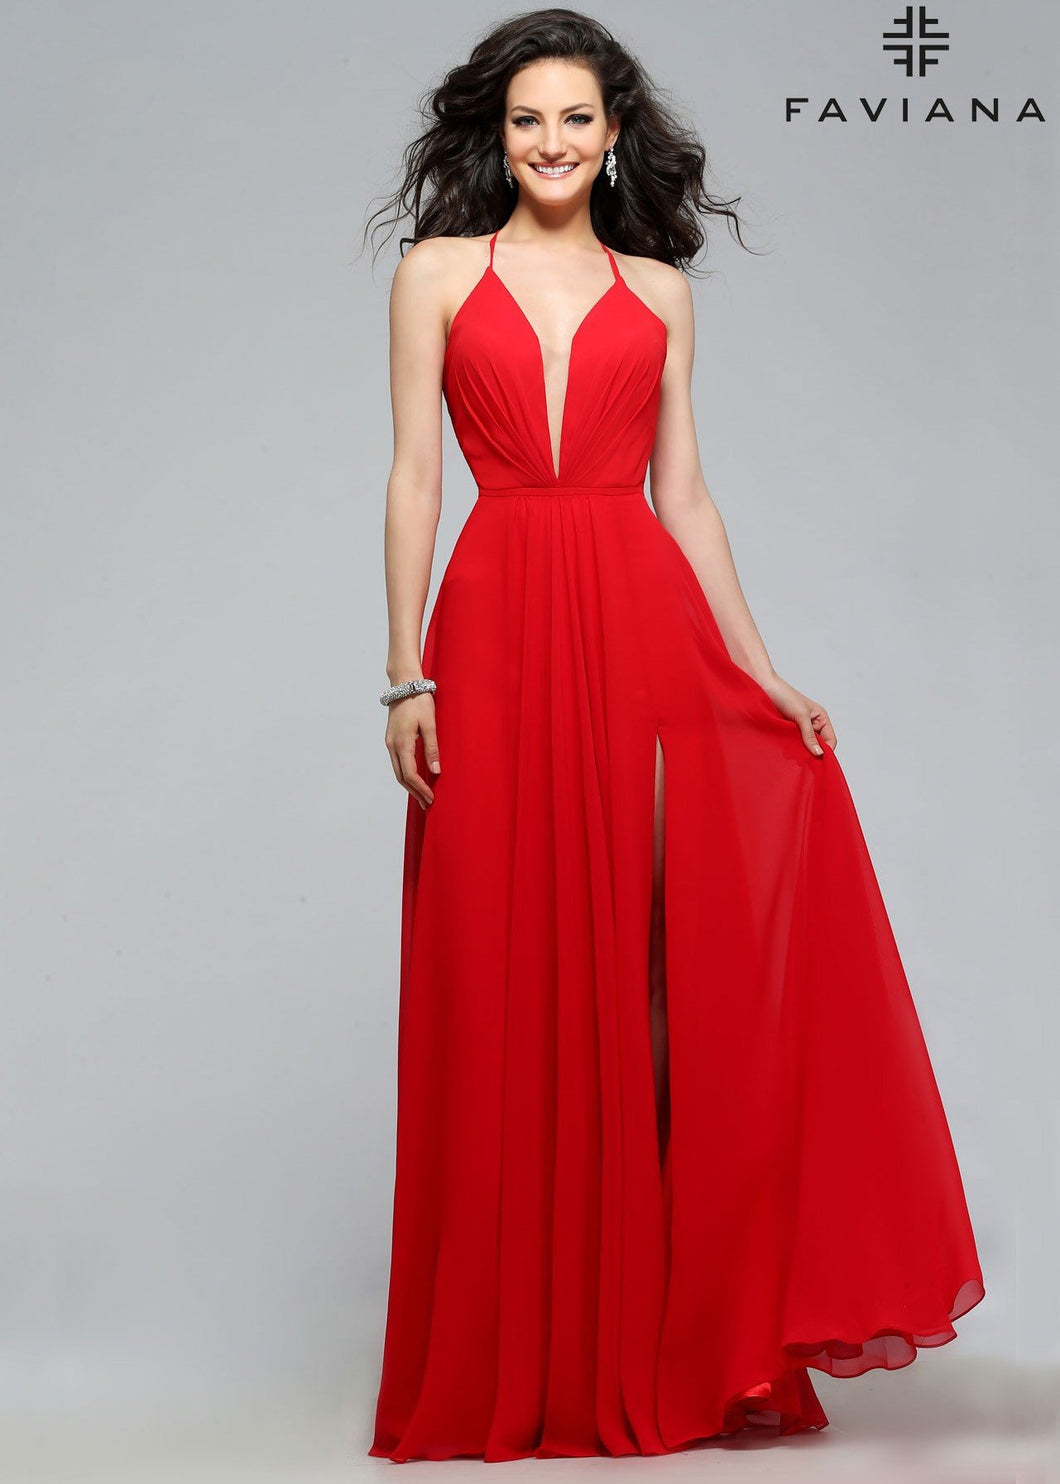 Red Strappy Faviana Dress Size 00